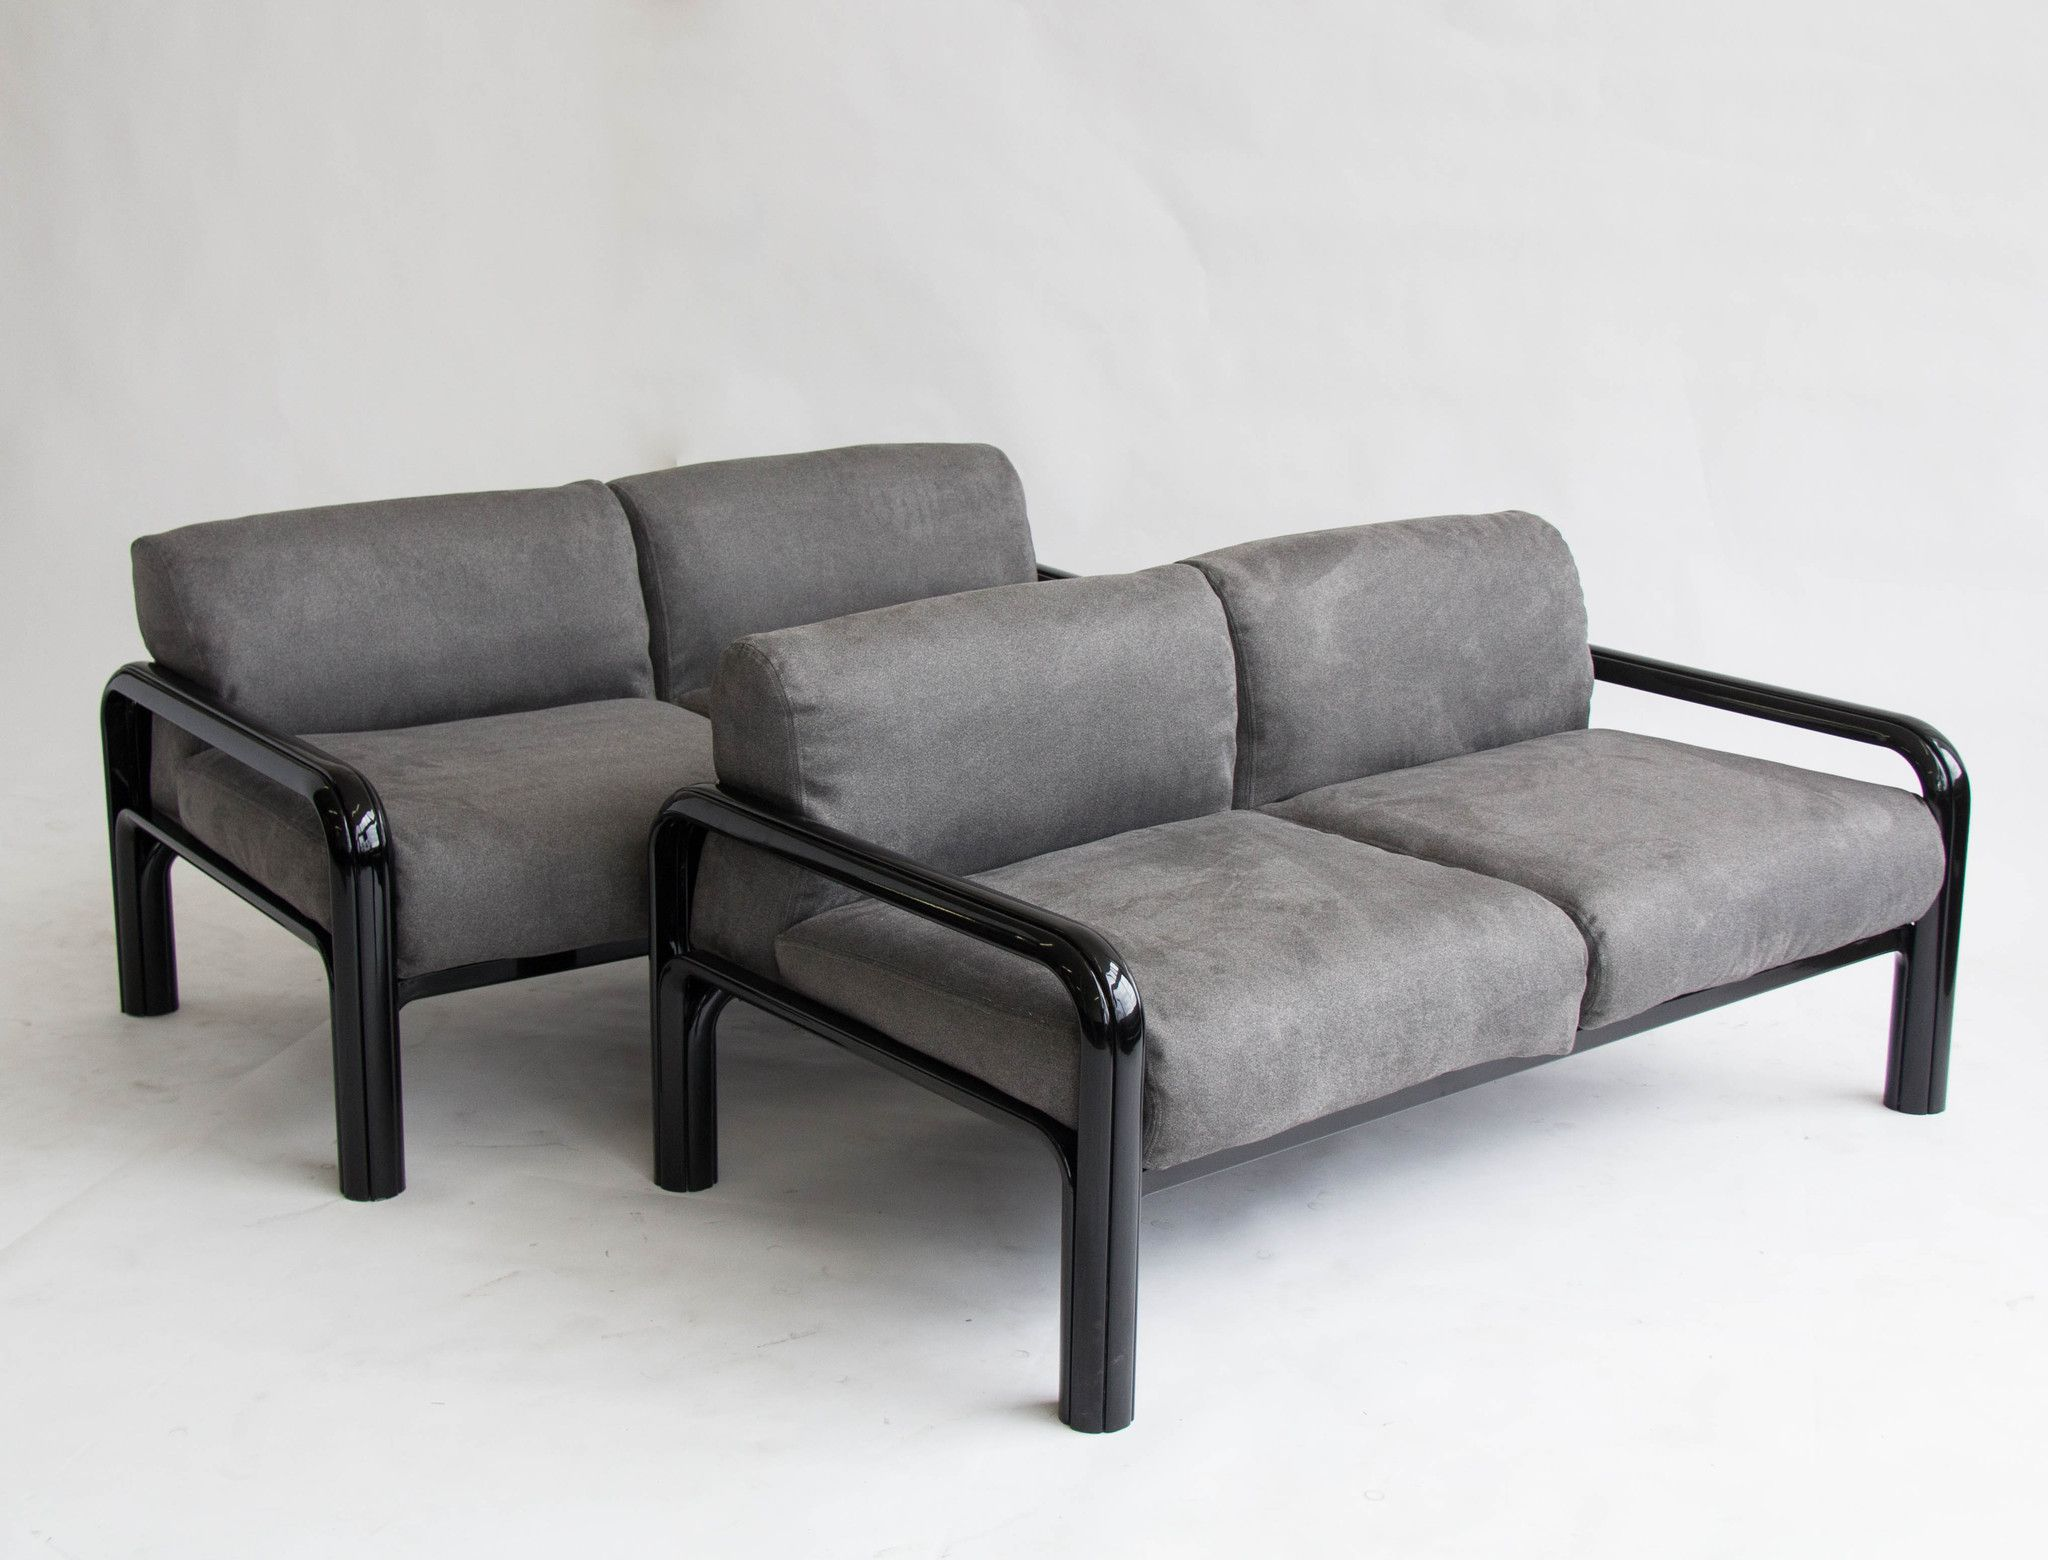 by in single hidden one a boulder co cushion seat additional loveseat